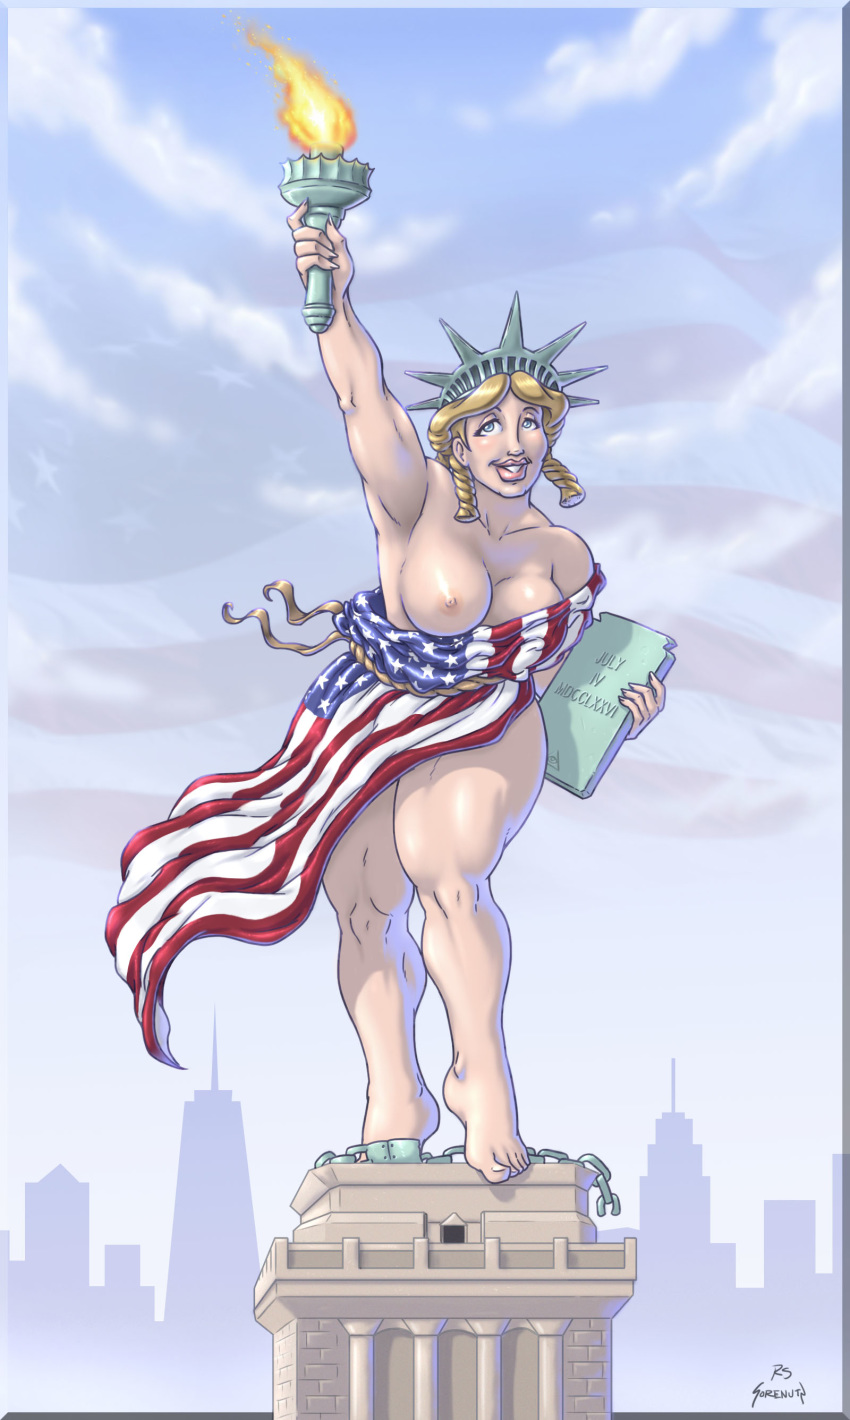 kissing liberty lady justice statue of My little pony impregnation hentai